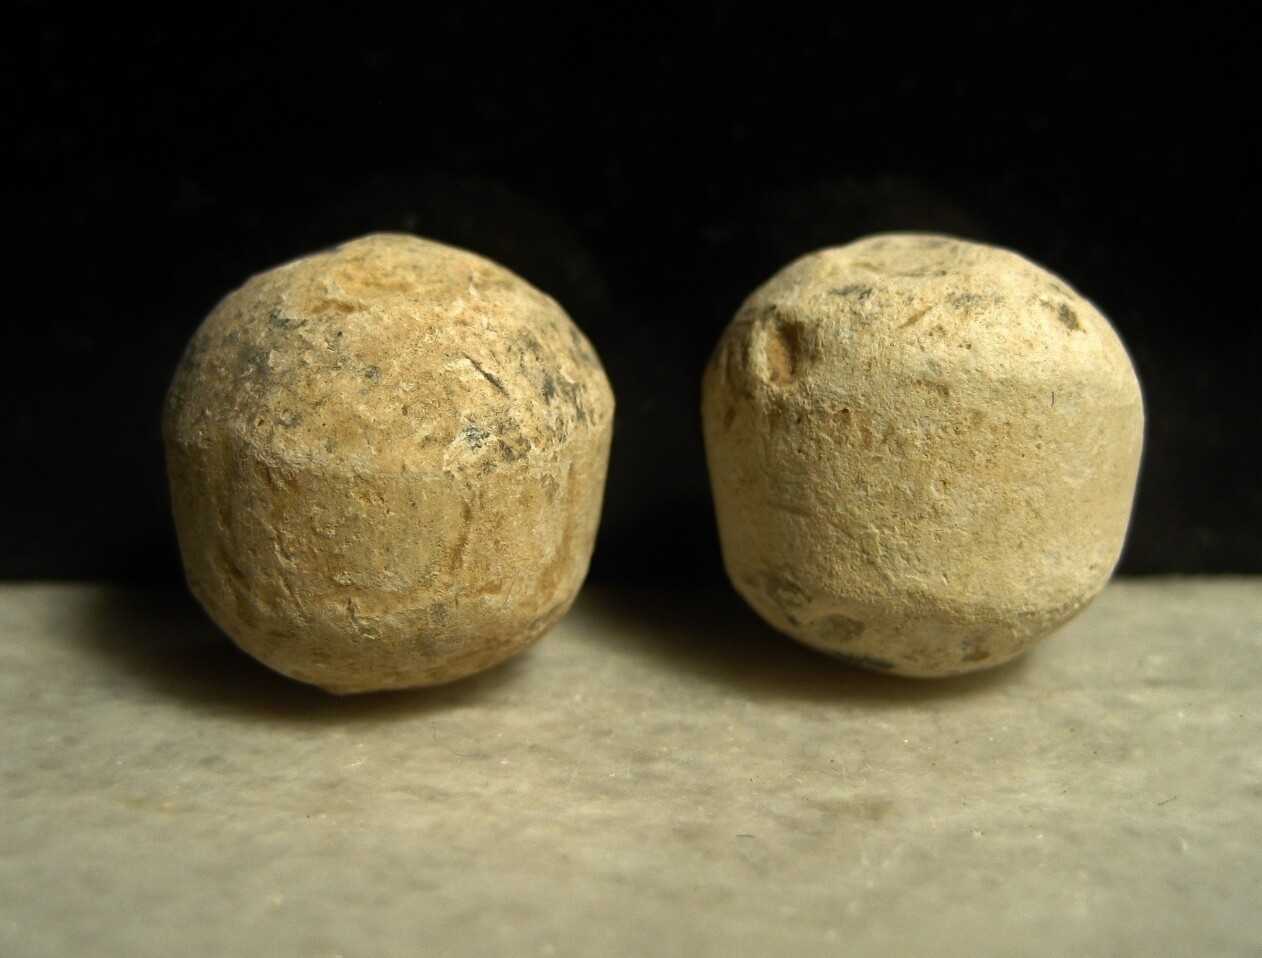 JUST ADDED ON 2/26 - THE BATTLE OF ANTIETAM / MILLER'S CORNFIELD / THE WILSON FARM - Two .69 Caliber Musket Balls from Buck and Ball Rounds